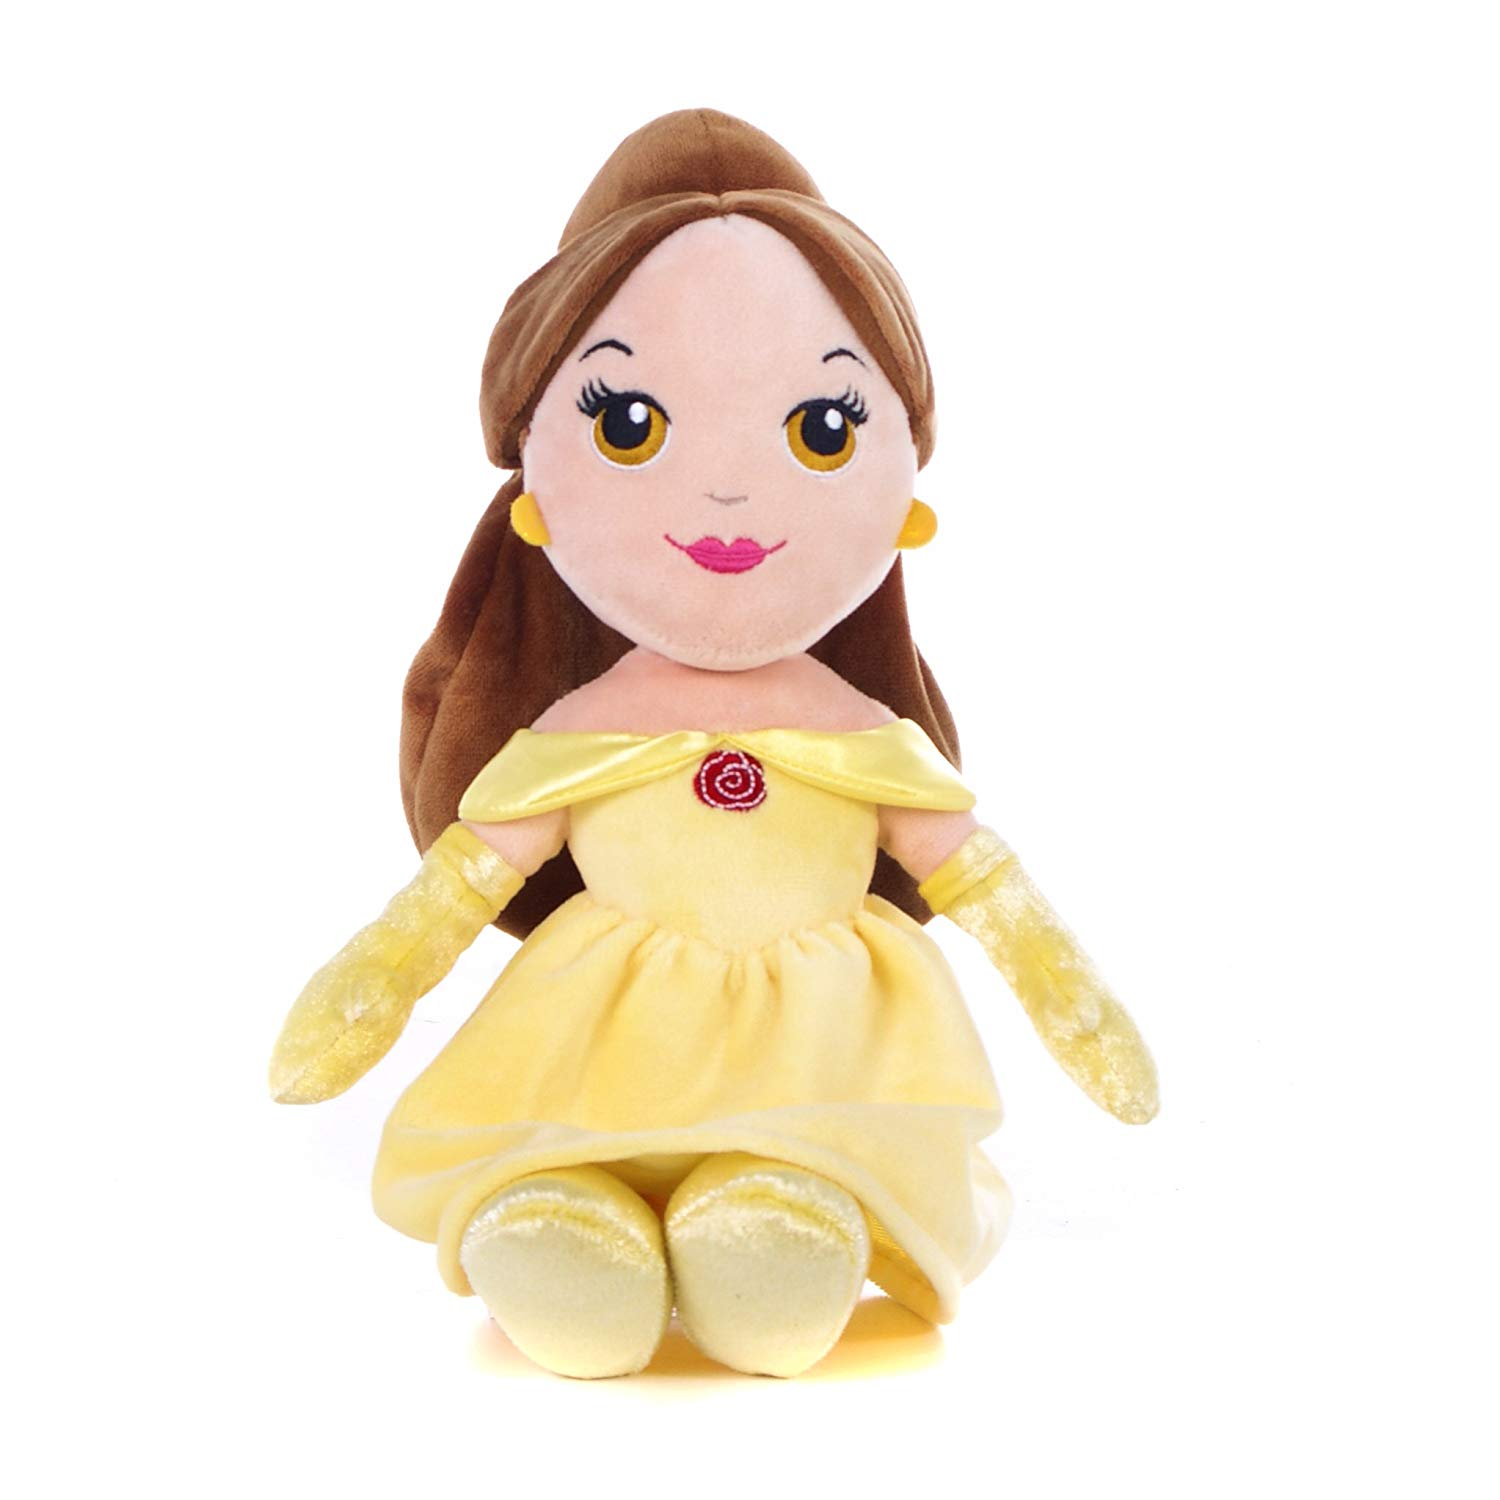 Posh Paws Disney 10-inch Princess Cute Belle